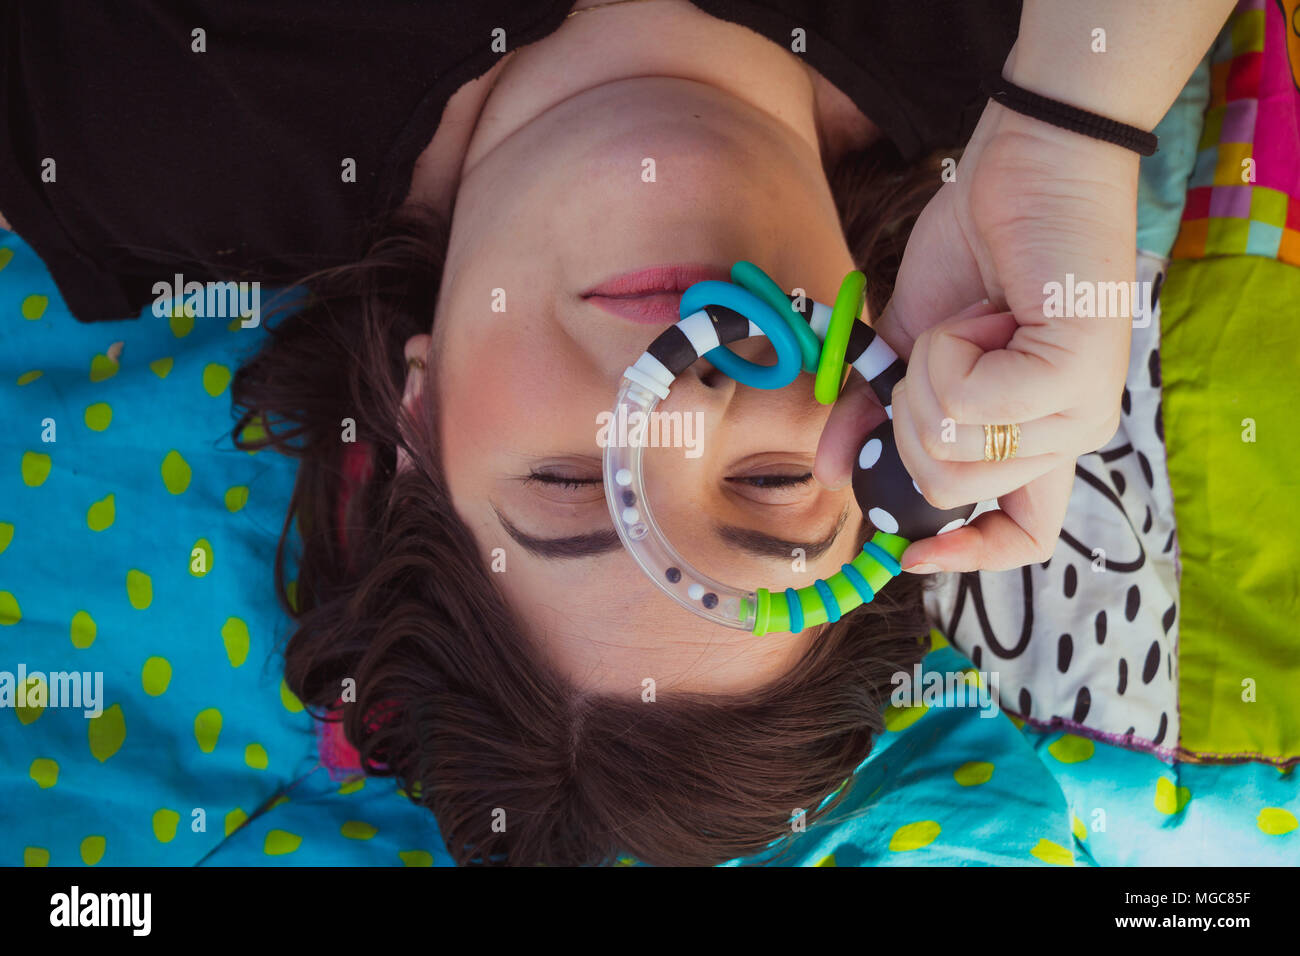 Woman lying on a colorful blanket and looking at camera through a baby toy - Stock Image